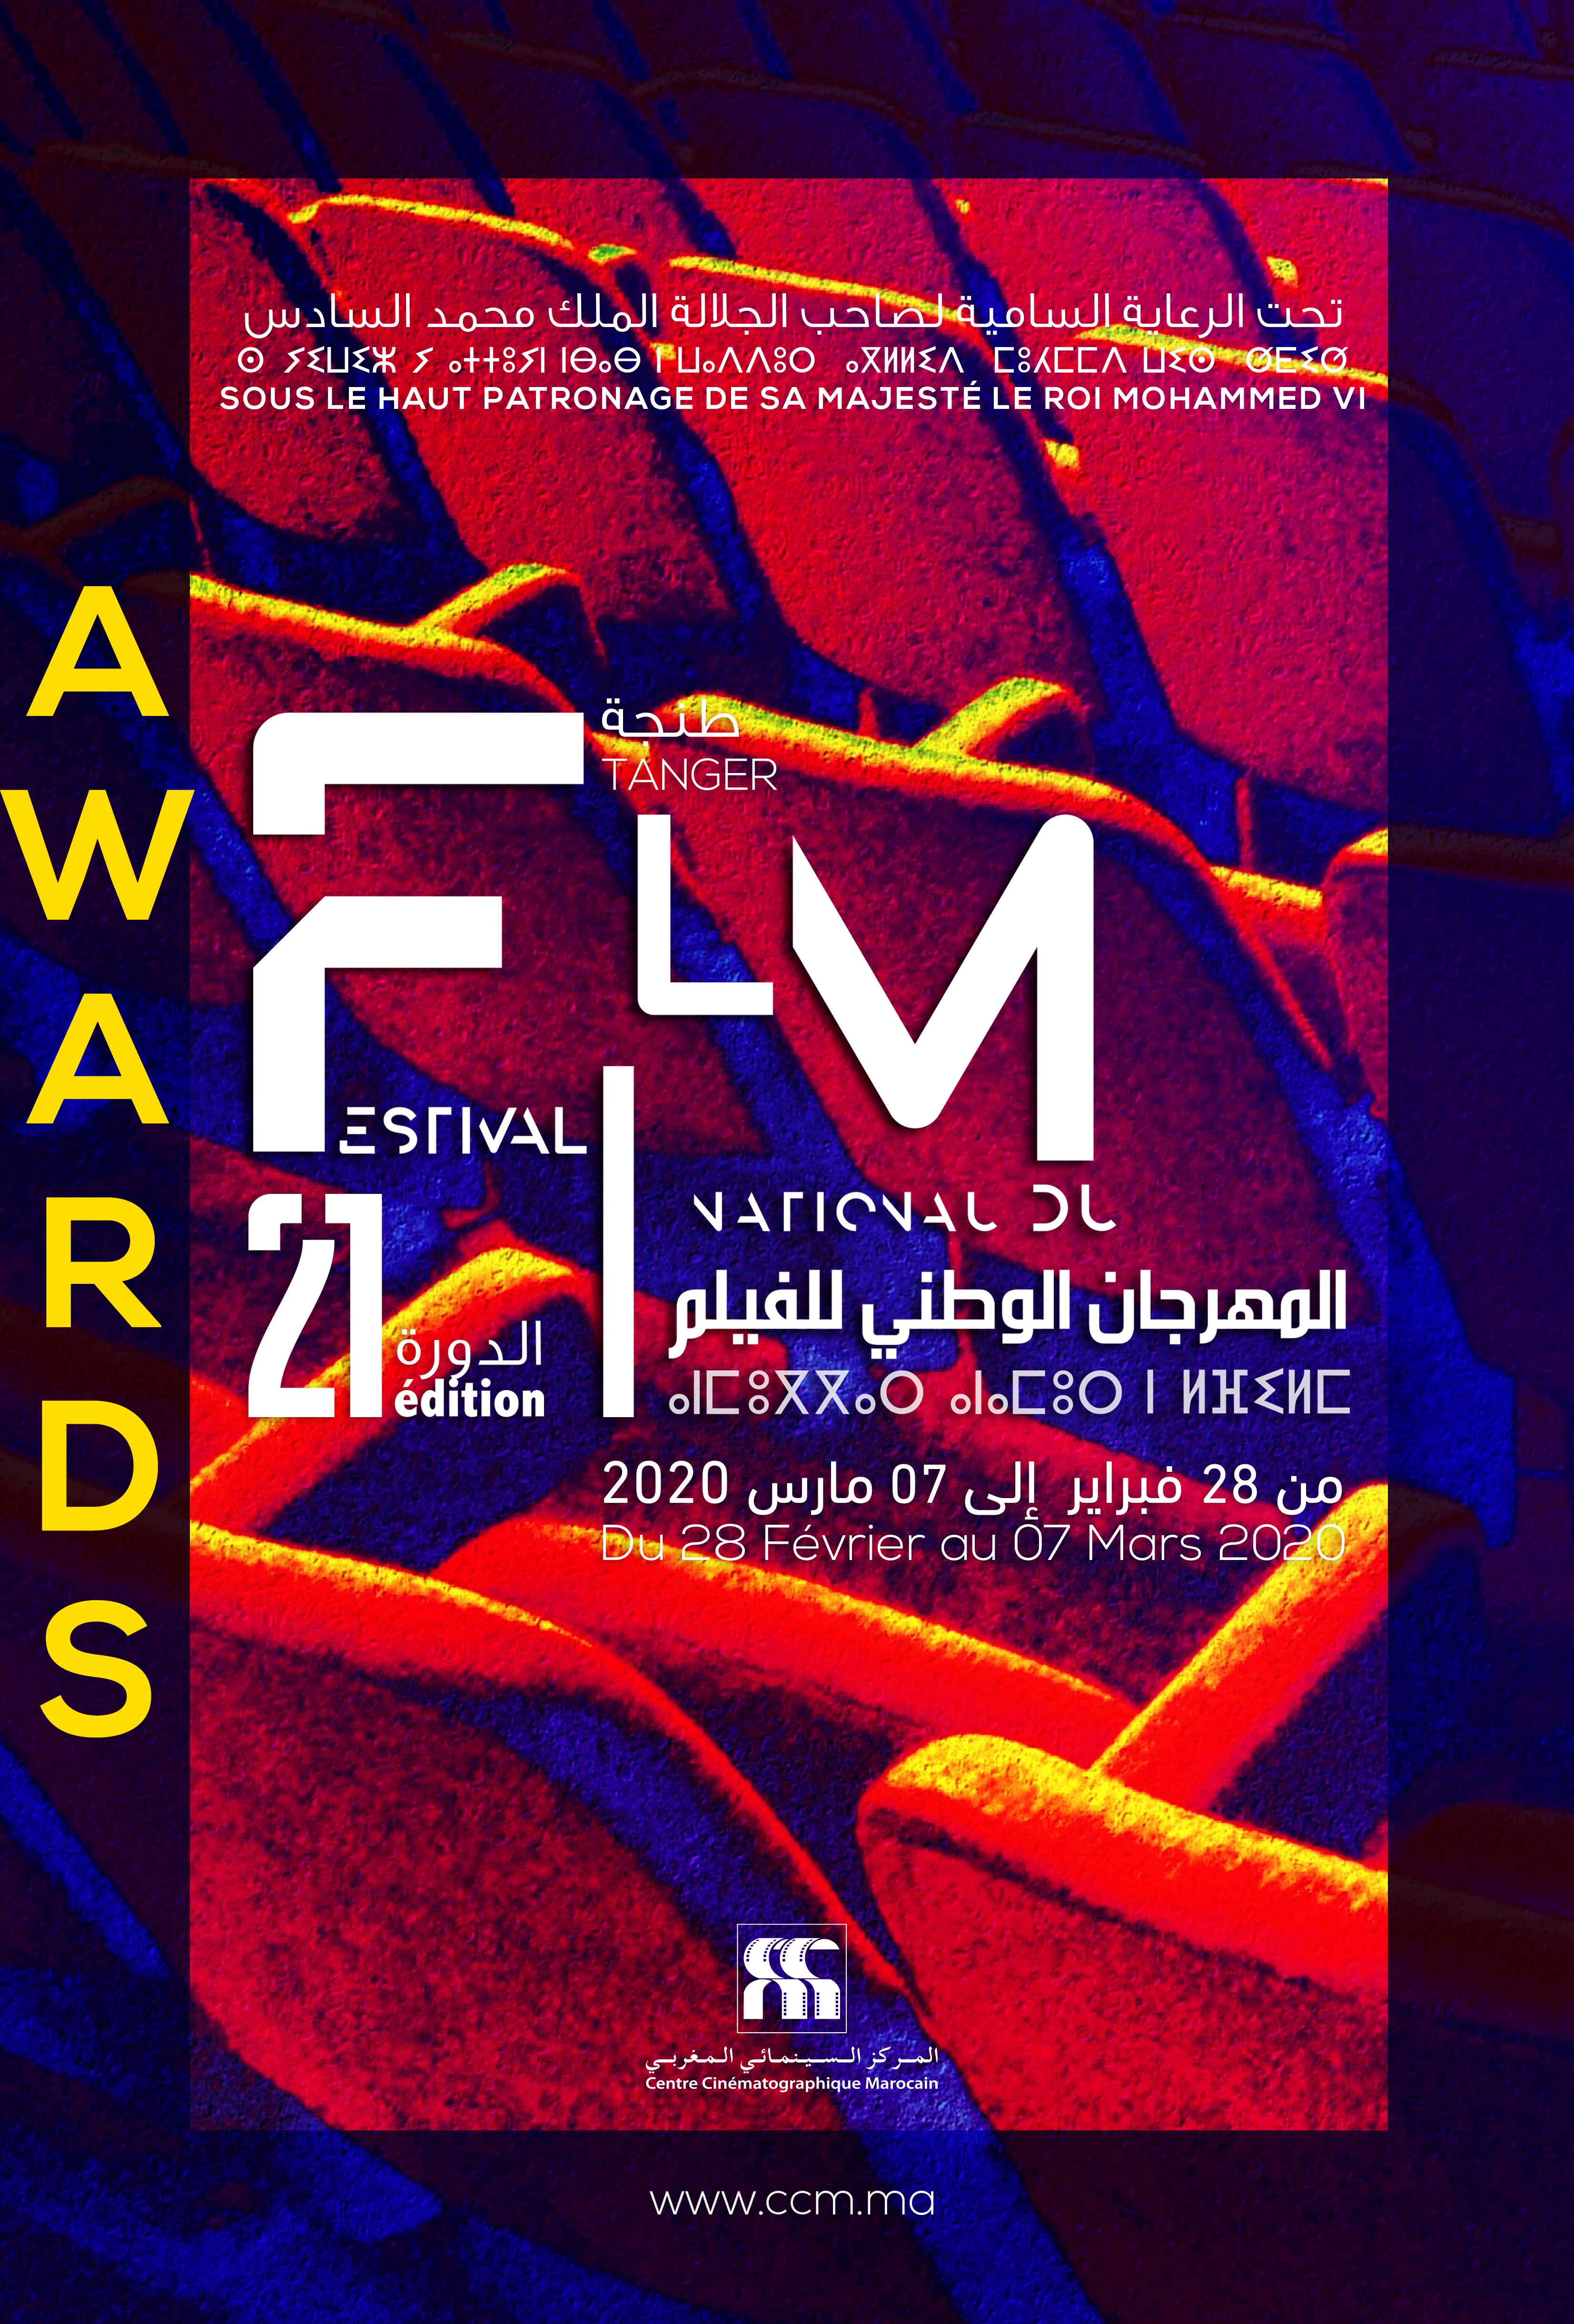 NATIONAL FILM FESTIVAL